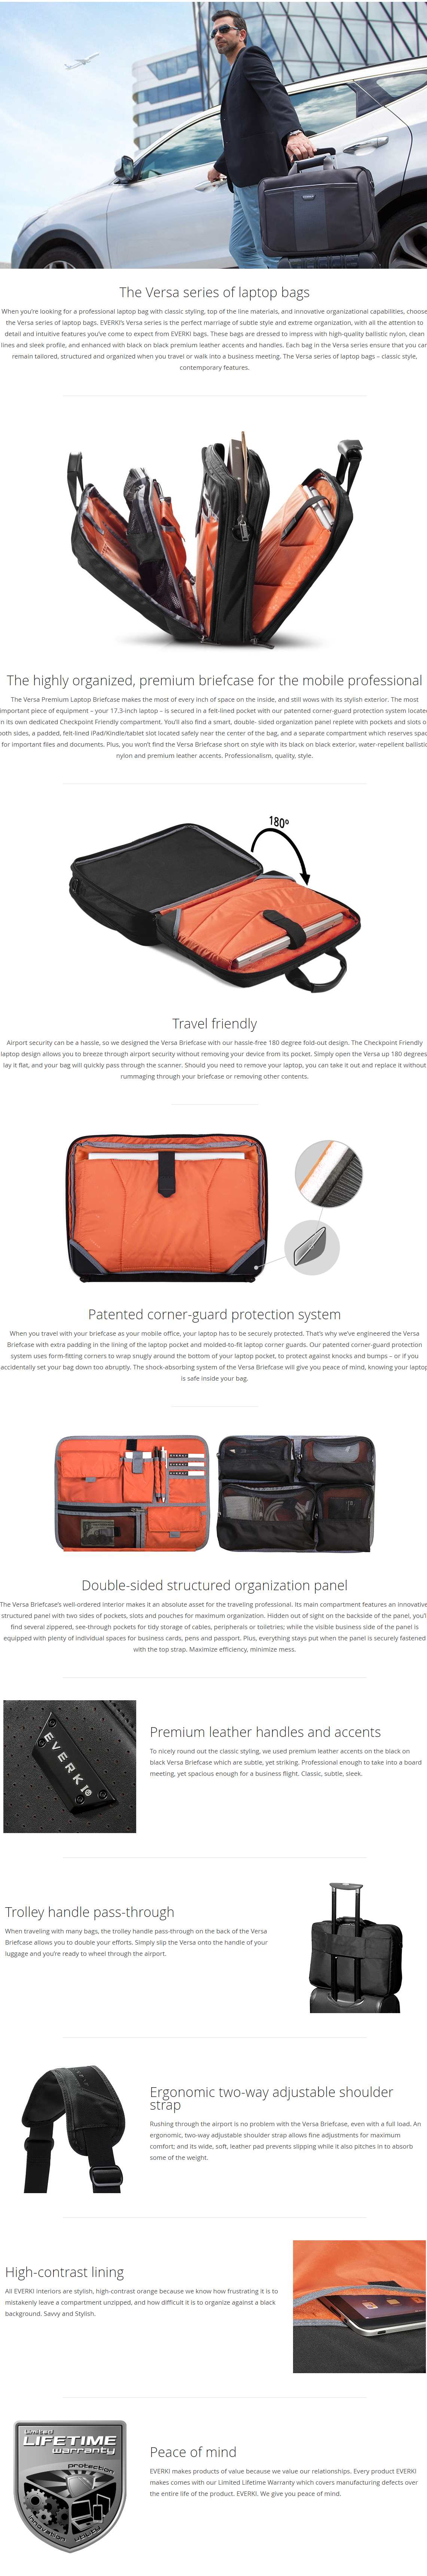 """A large marketing image providing additional information about the product Everki 17.3"""" Versa Checkpoint Friendly Briefcase - Additional alt info not provided"""